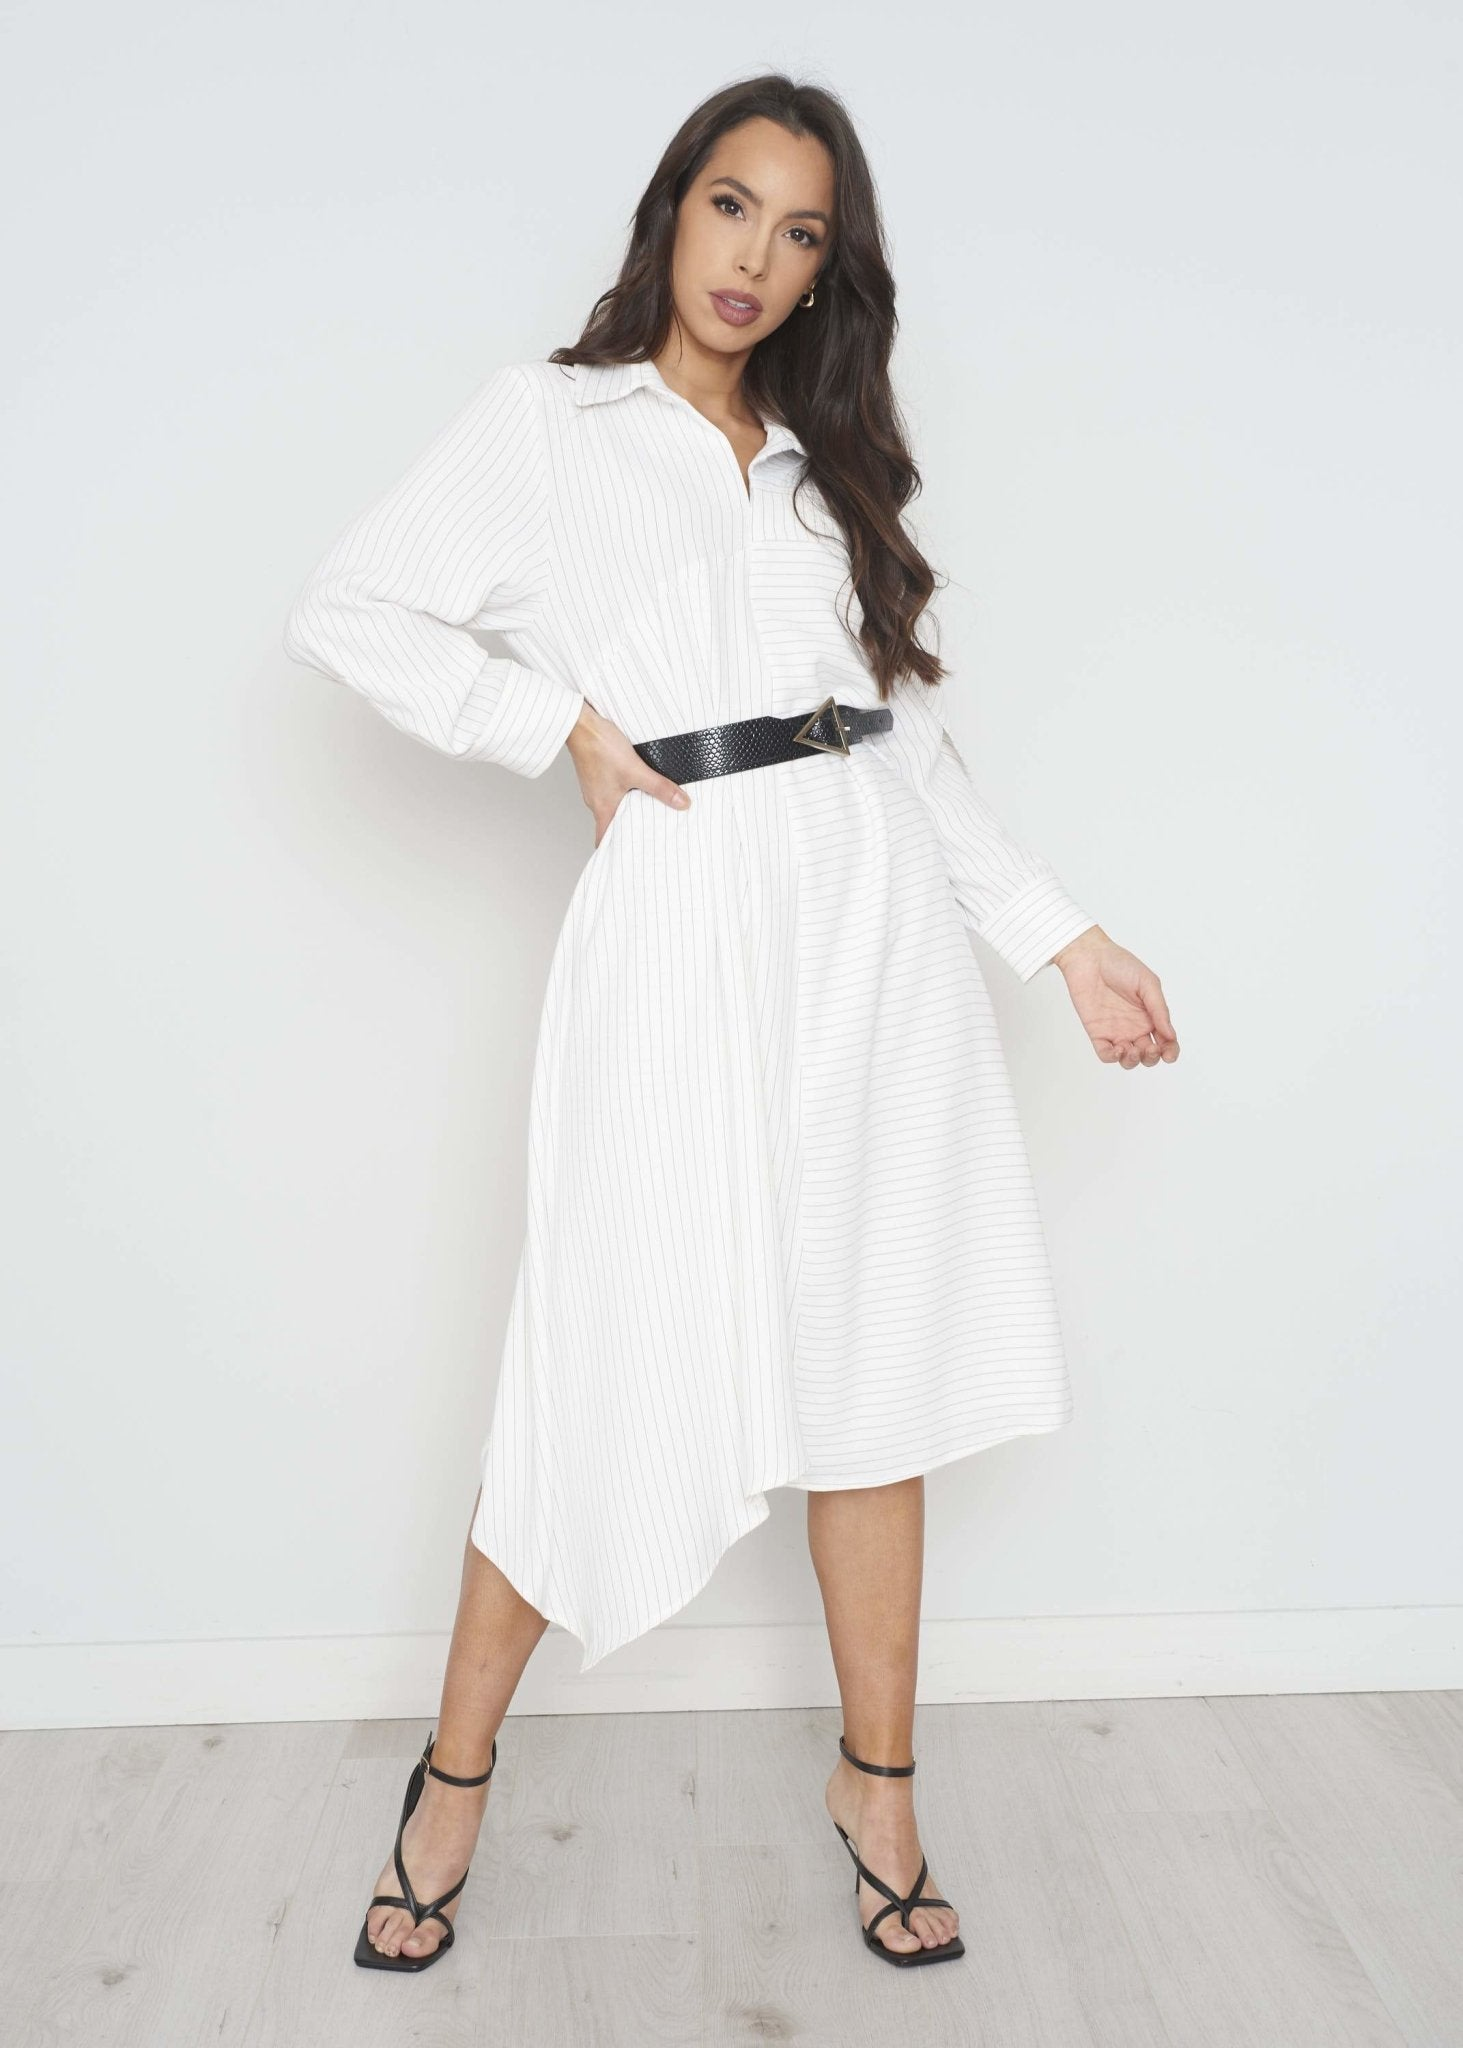 Savannah Stripe Shirt Dress In White - The Walk in Wardrobe